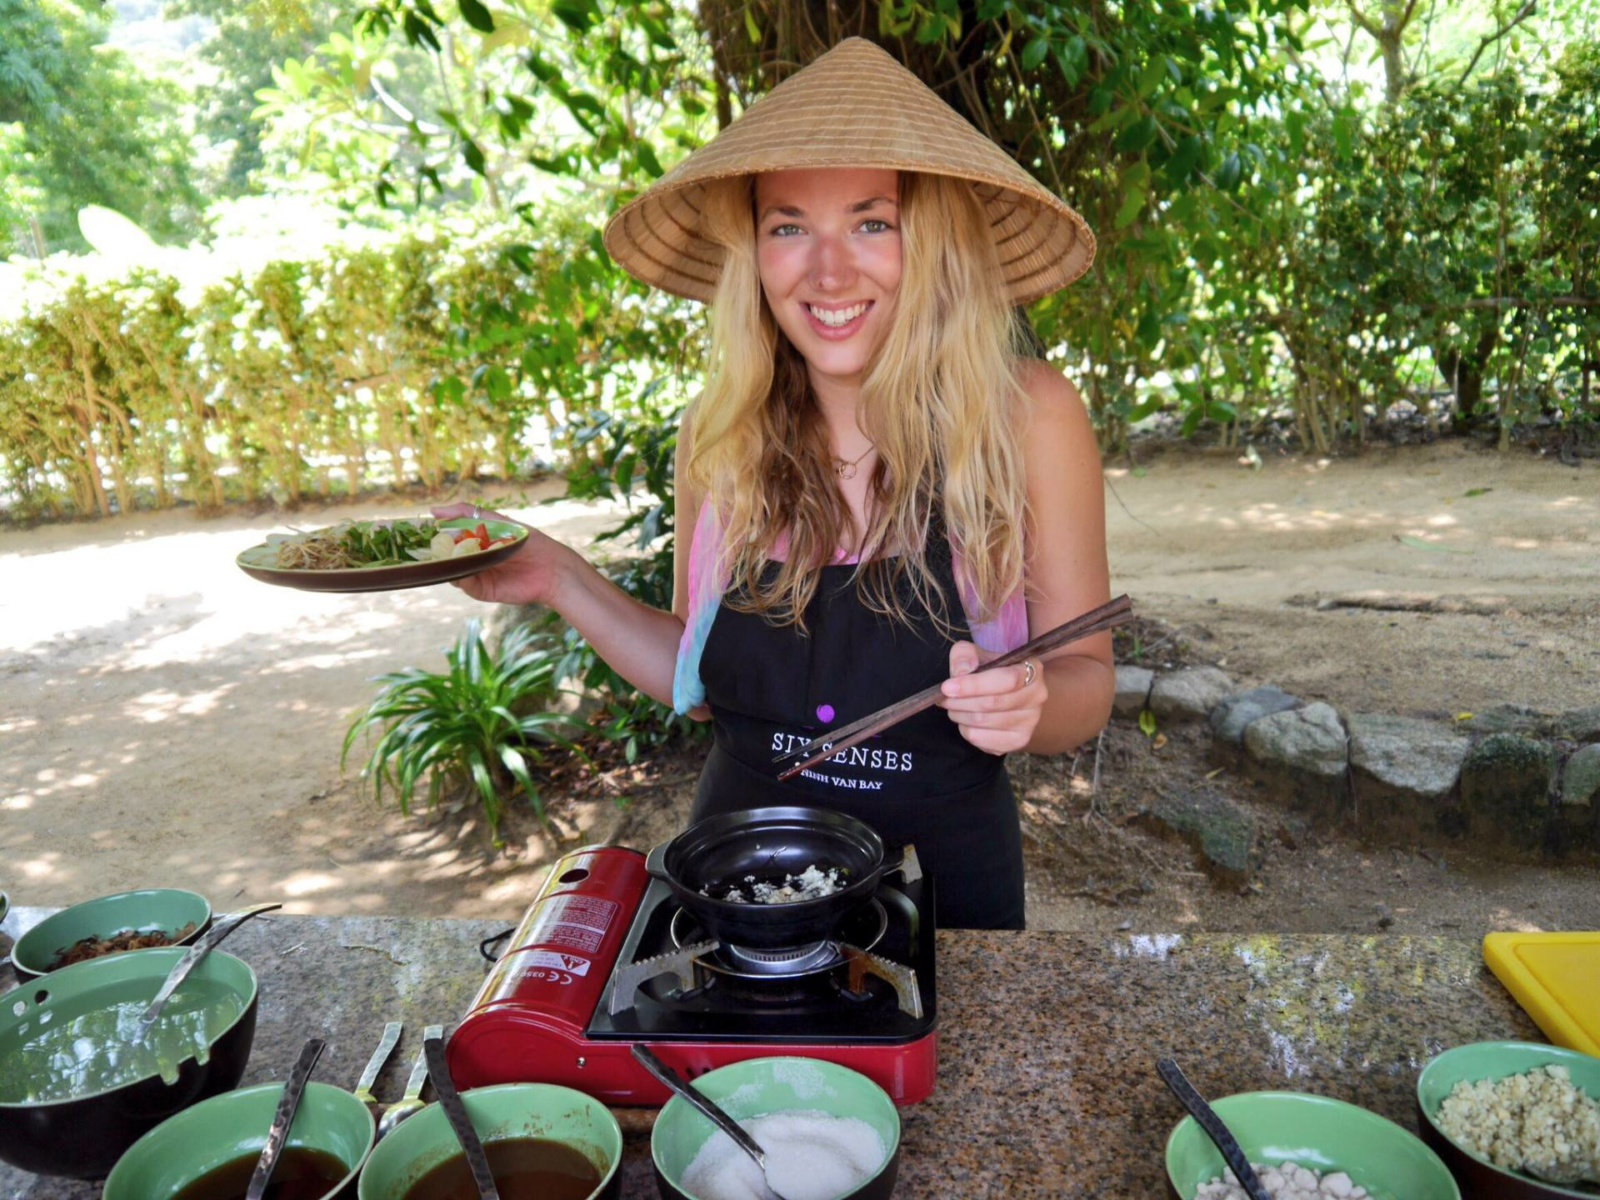 the-travelista-jess-gibson-travel-blog-six-senses-cooking-class